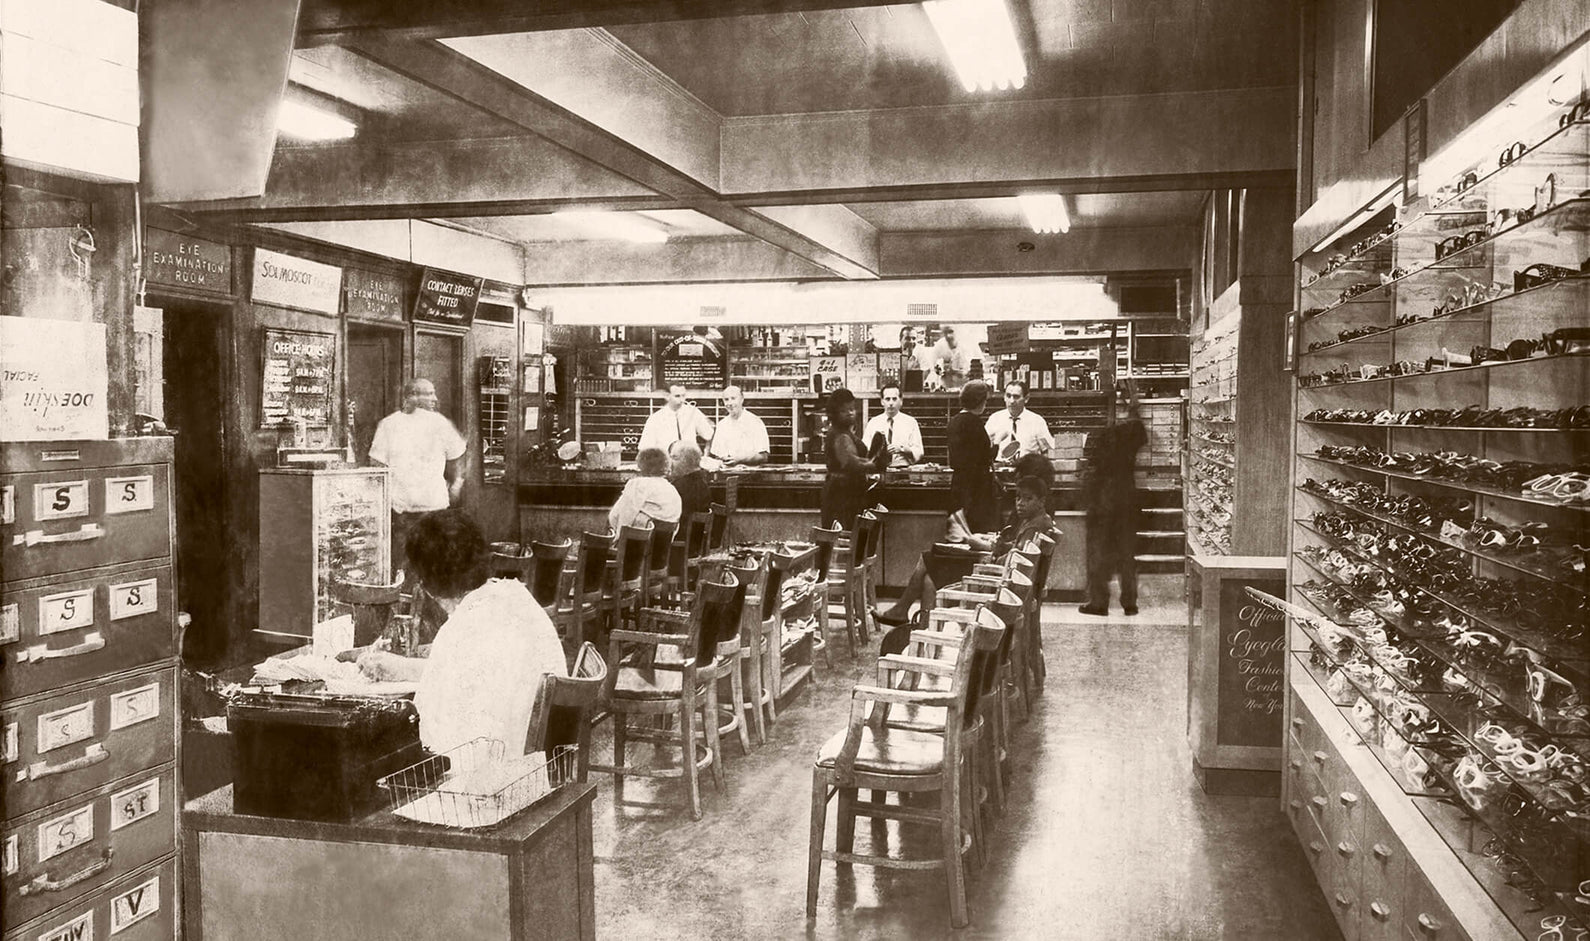 Old photo of the inside of Moscot store